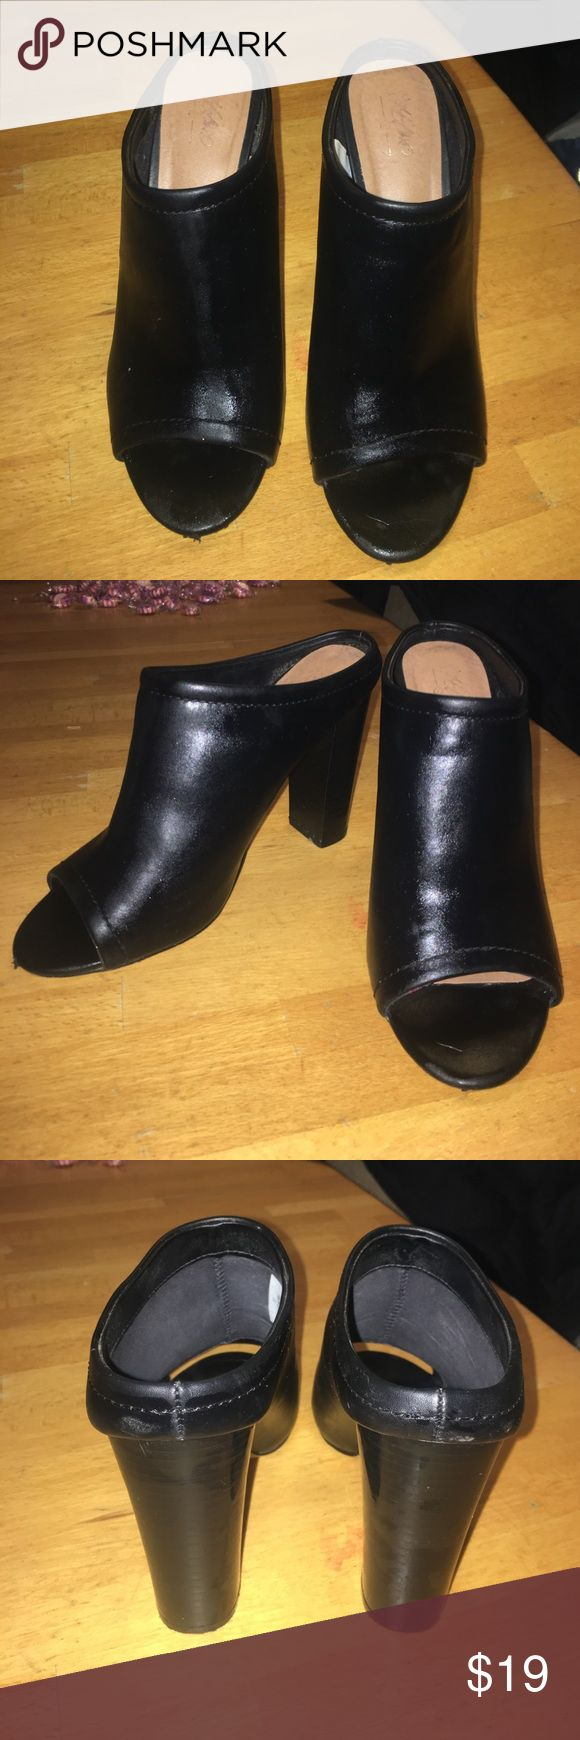 """Black leather open-toed heels Black leather pee-toe heels! Heel length is about 4"""", I got them from target for $35. Just looking for s different style! They're marked as a size 7.5 but I usually wear a 7 Mossimo Supply Co. Shoes Mules & Clogs"""